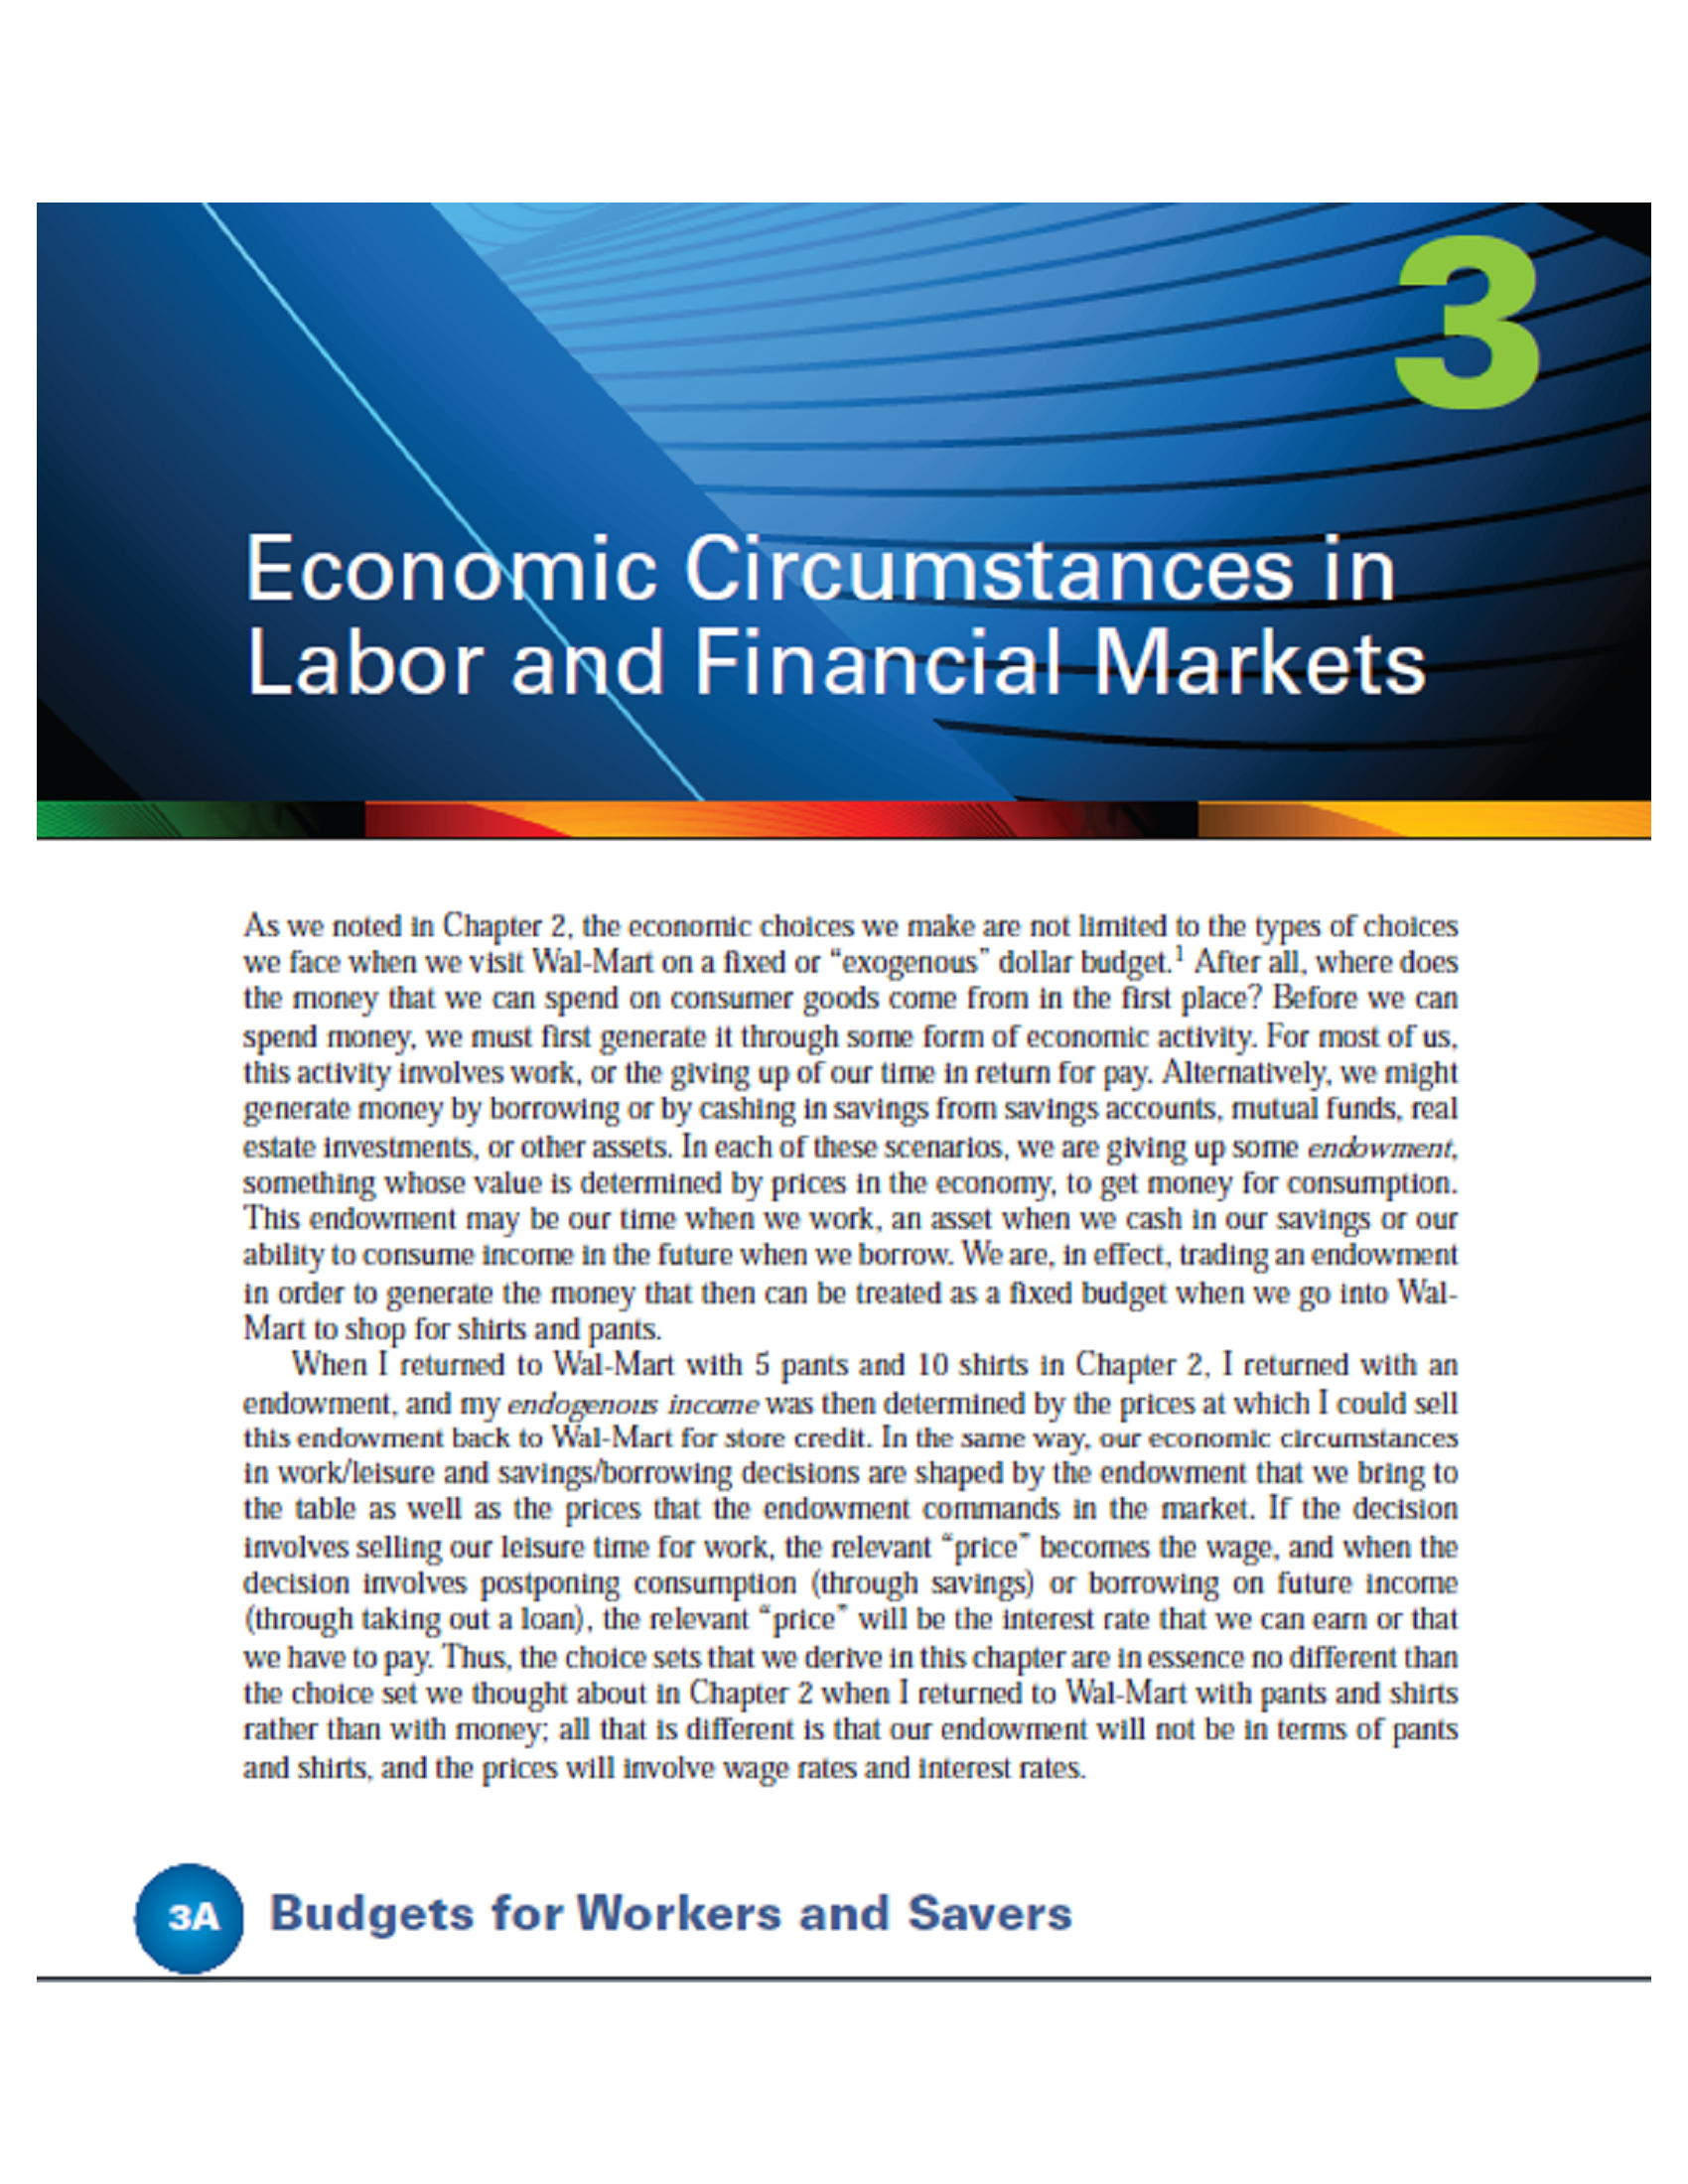 Economic circumstances in labor and financial markets 26